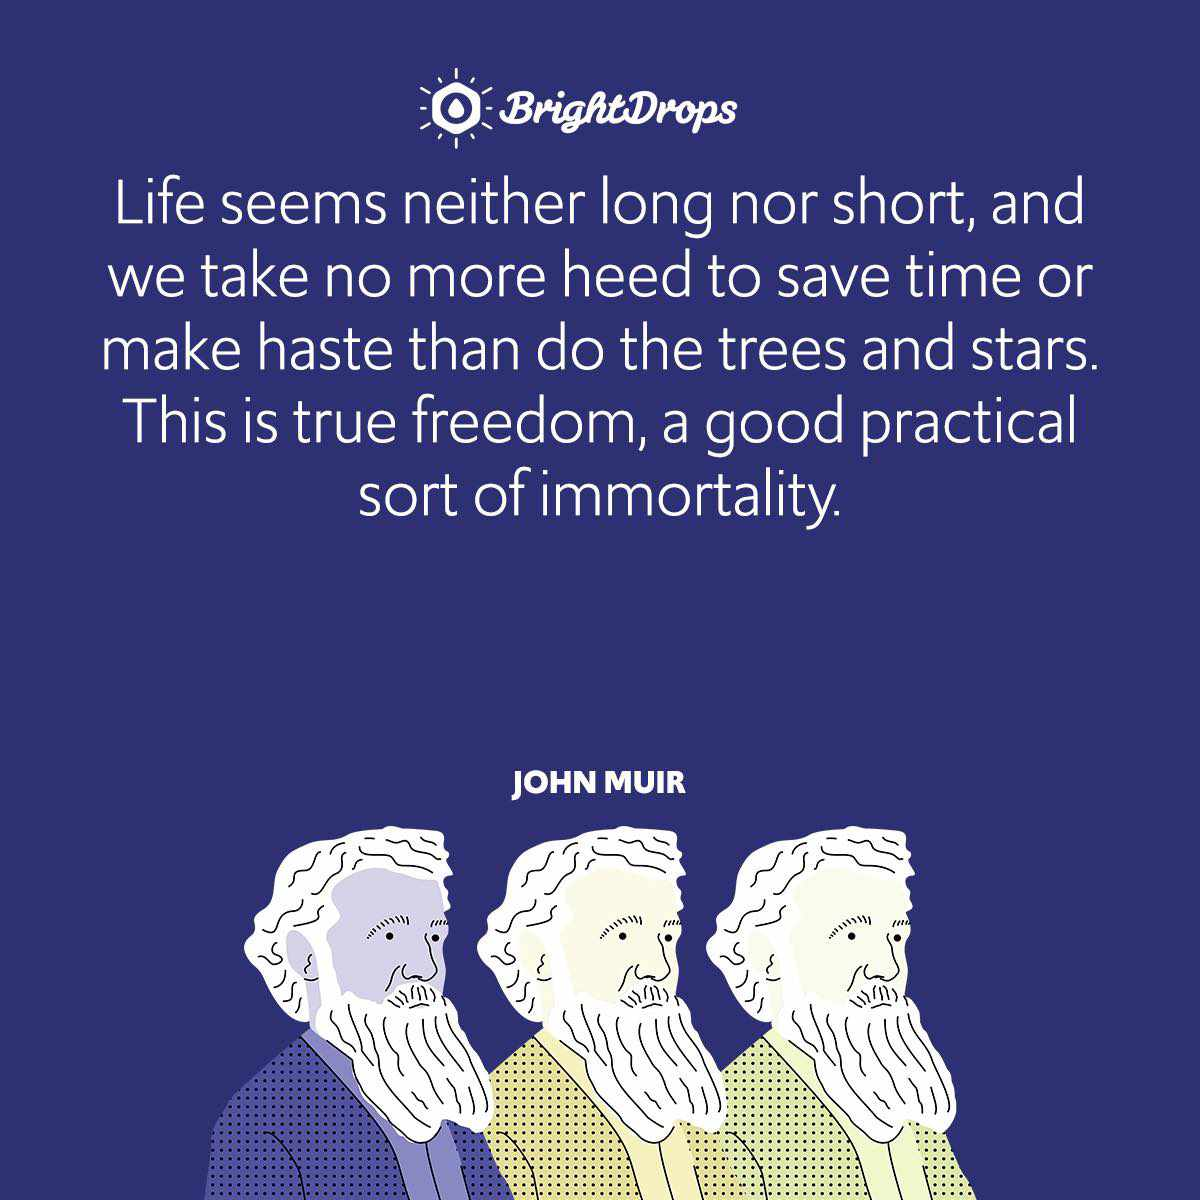 Life seems neither long nor short, and we take no more heed to save time or make haste than do the trees and stars. This is true freedom, a good practical sort of immortality.